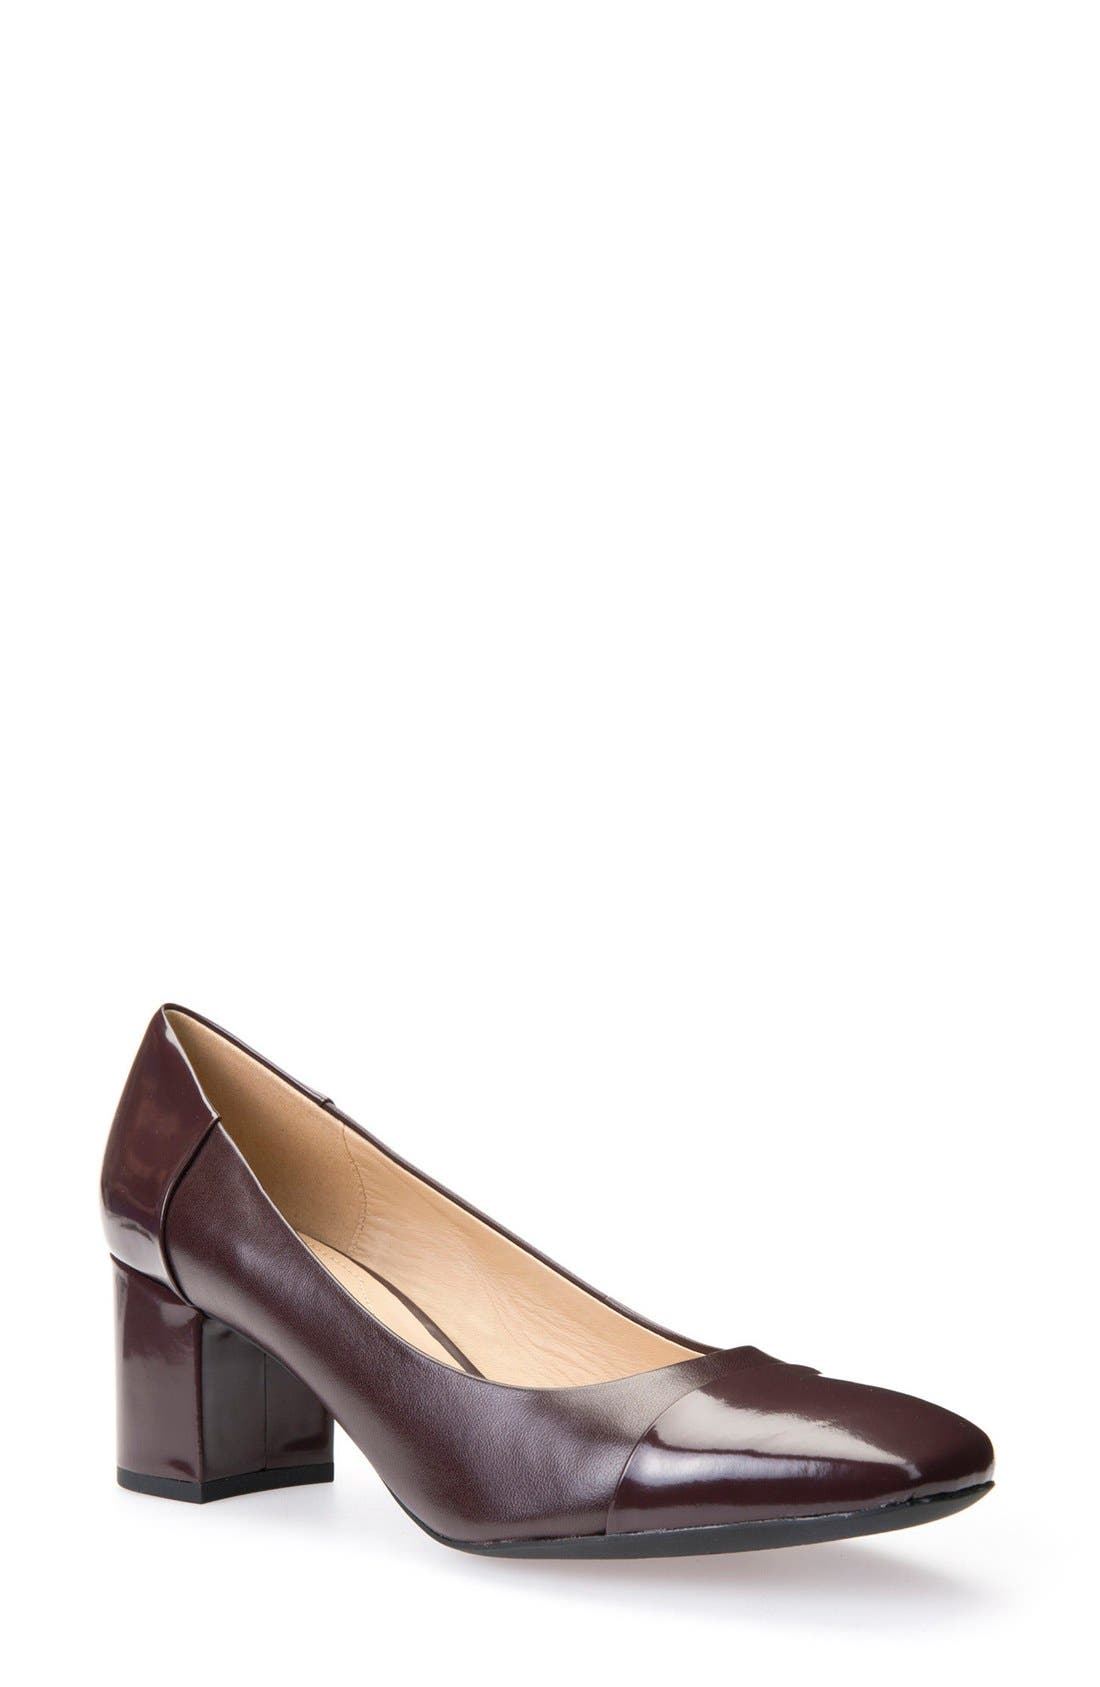 Alternate Image 1 Selected - Geox New Symphony Cap Toe Pump (Women)